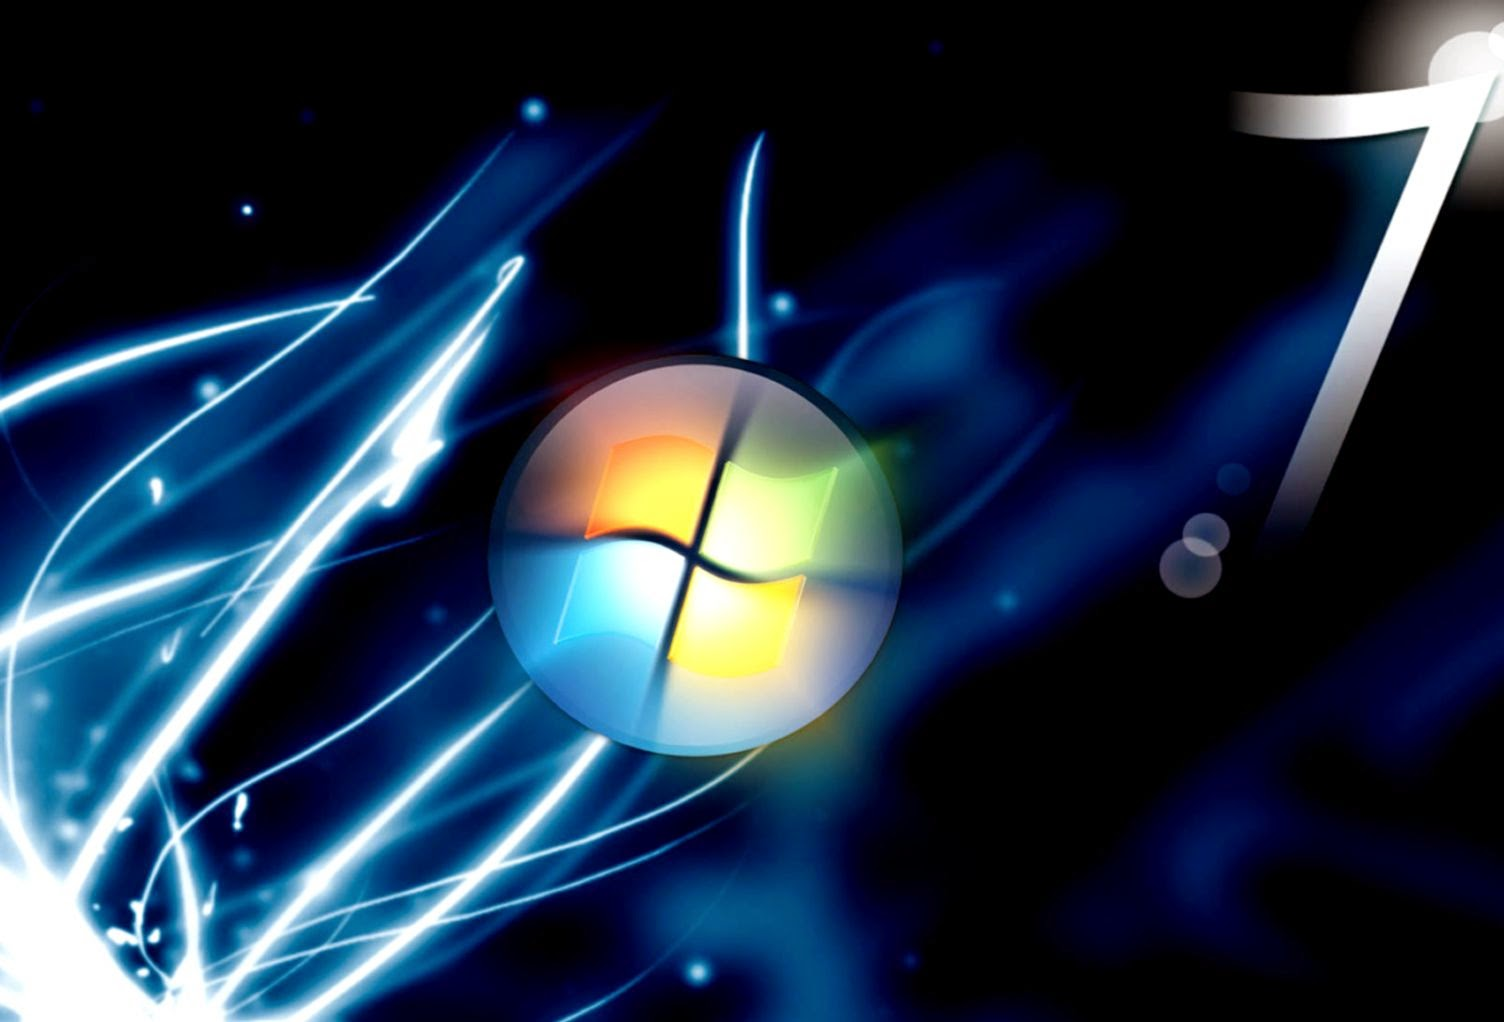 Windows 7 animated wallpaper cool hd wallpapers - Windows animated wallpaper ...